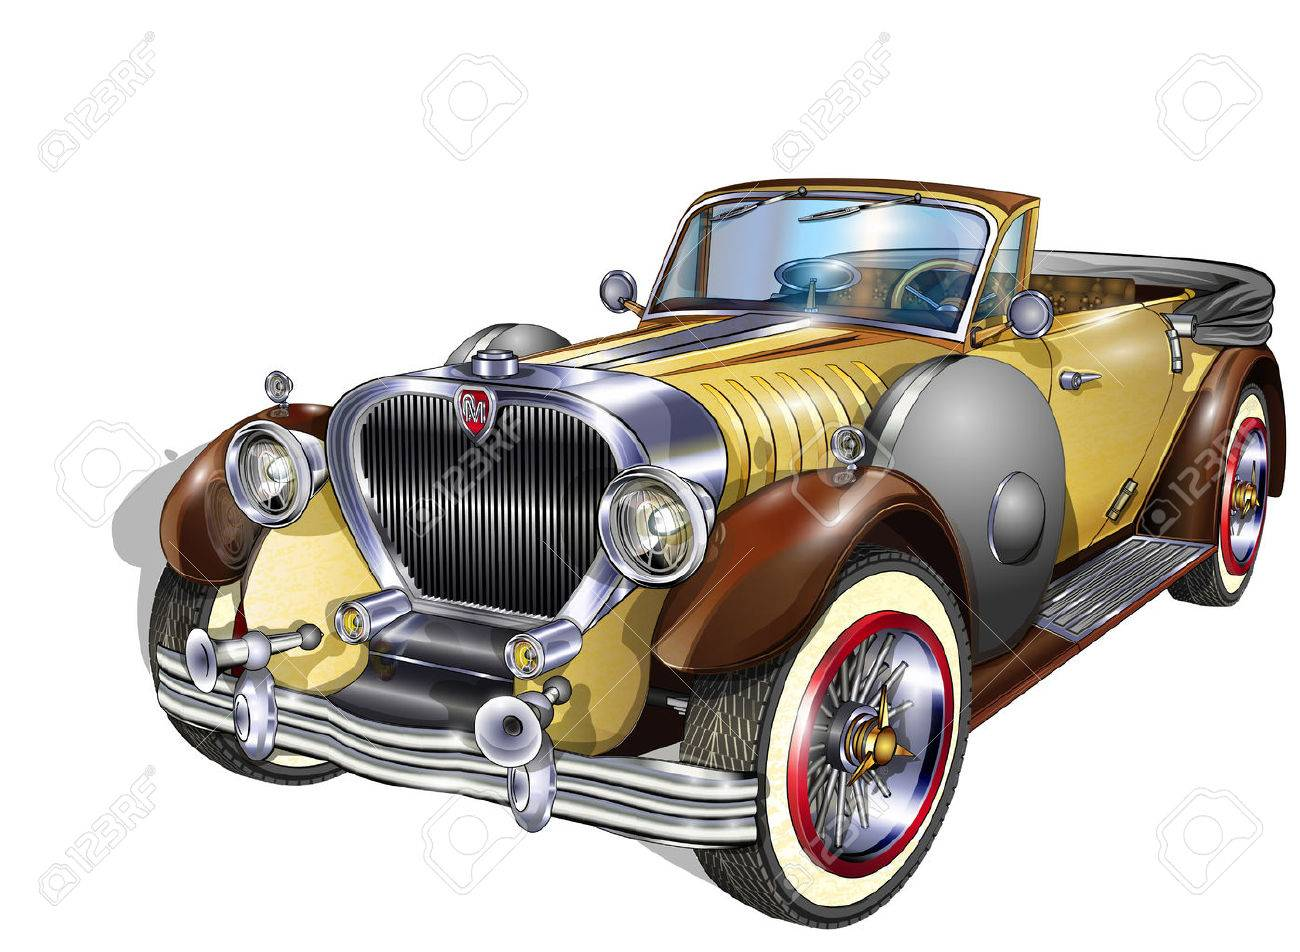 Vintage Car Royalty Free Cliparts, Vectors, And Stock Illustration ...